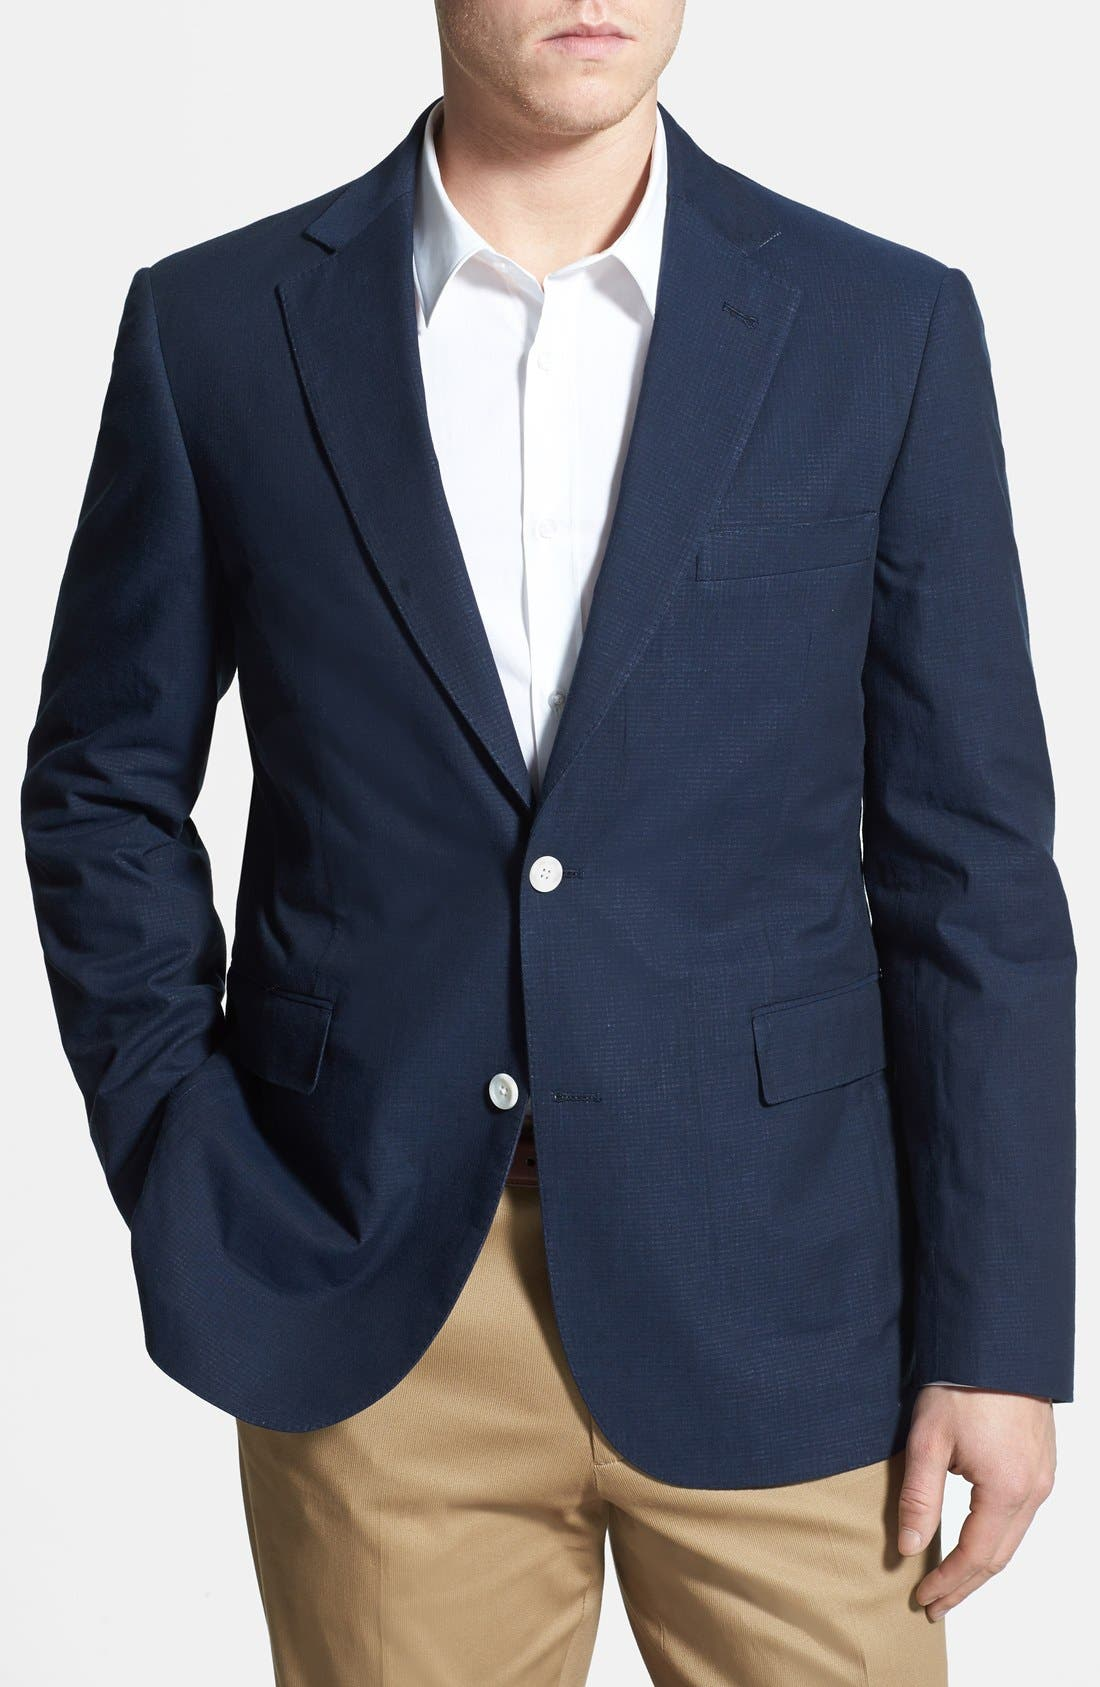 Alternate Image 1 Selected - 2BSV NAVY GINGHAM SPORTCOAT